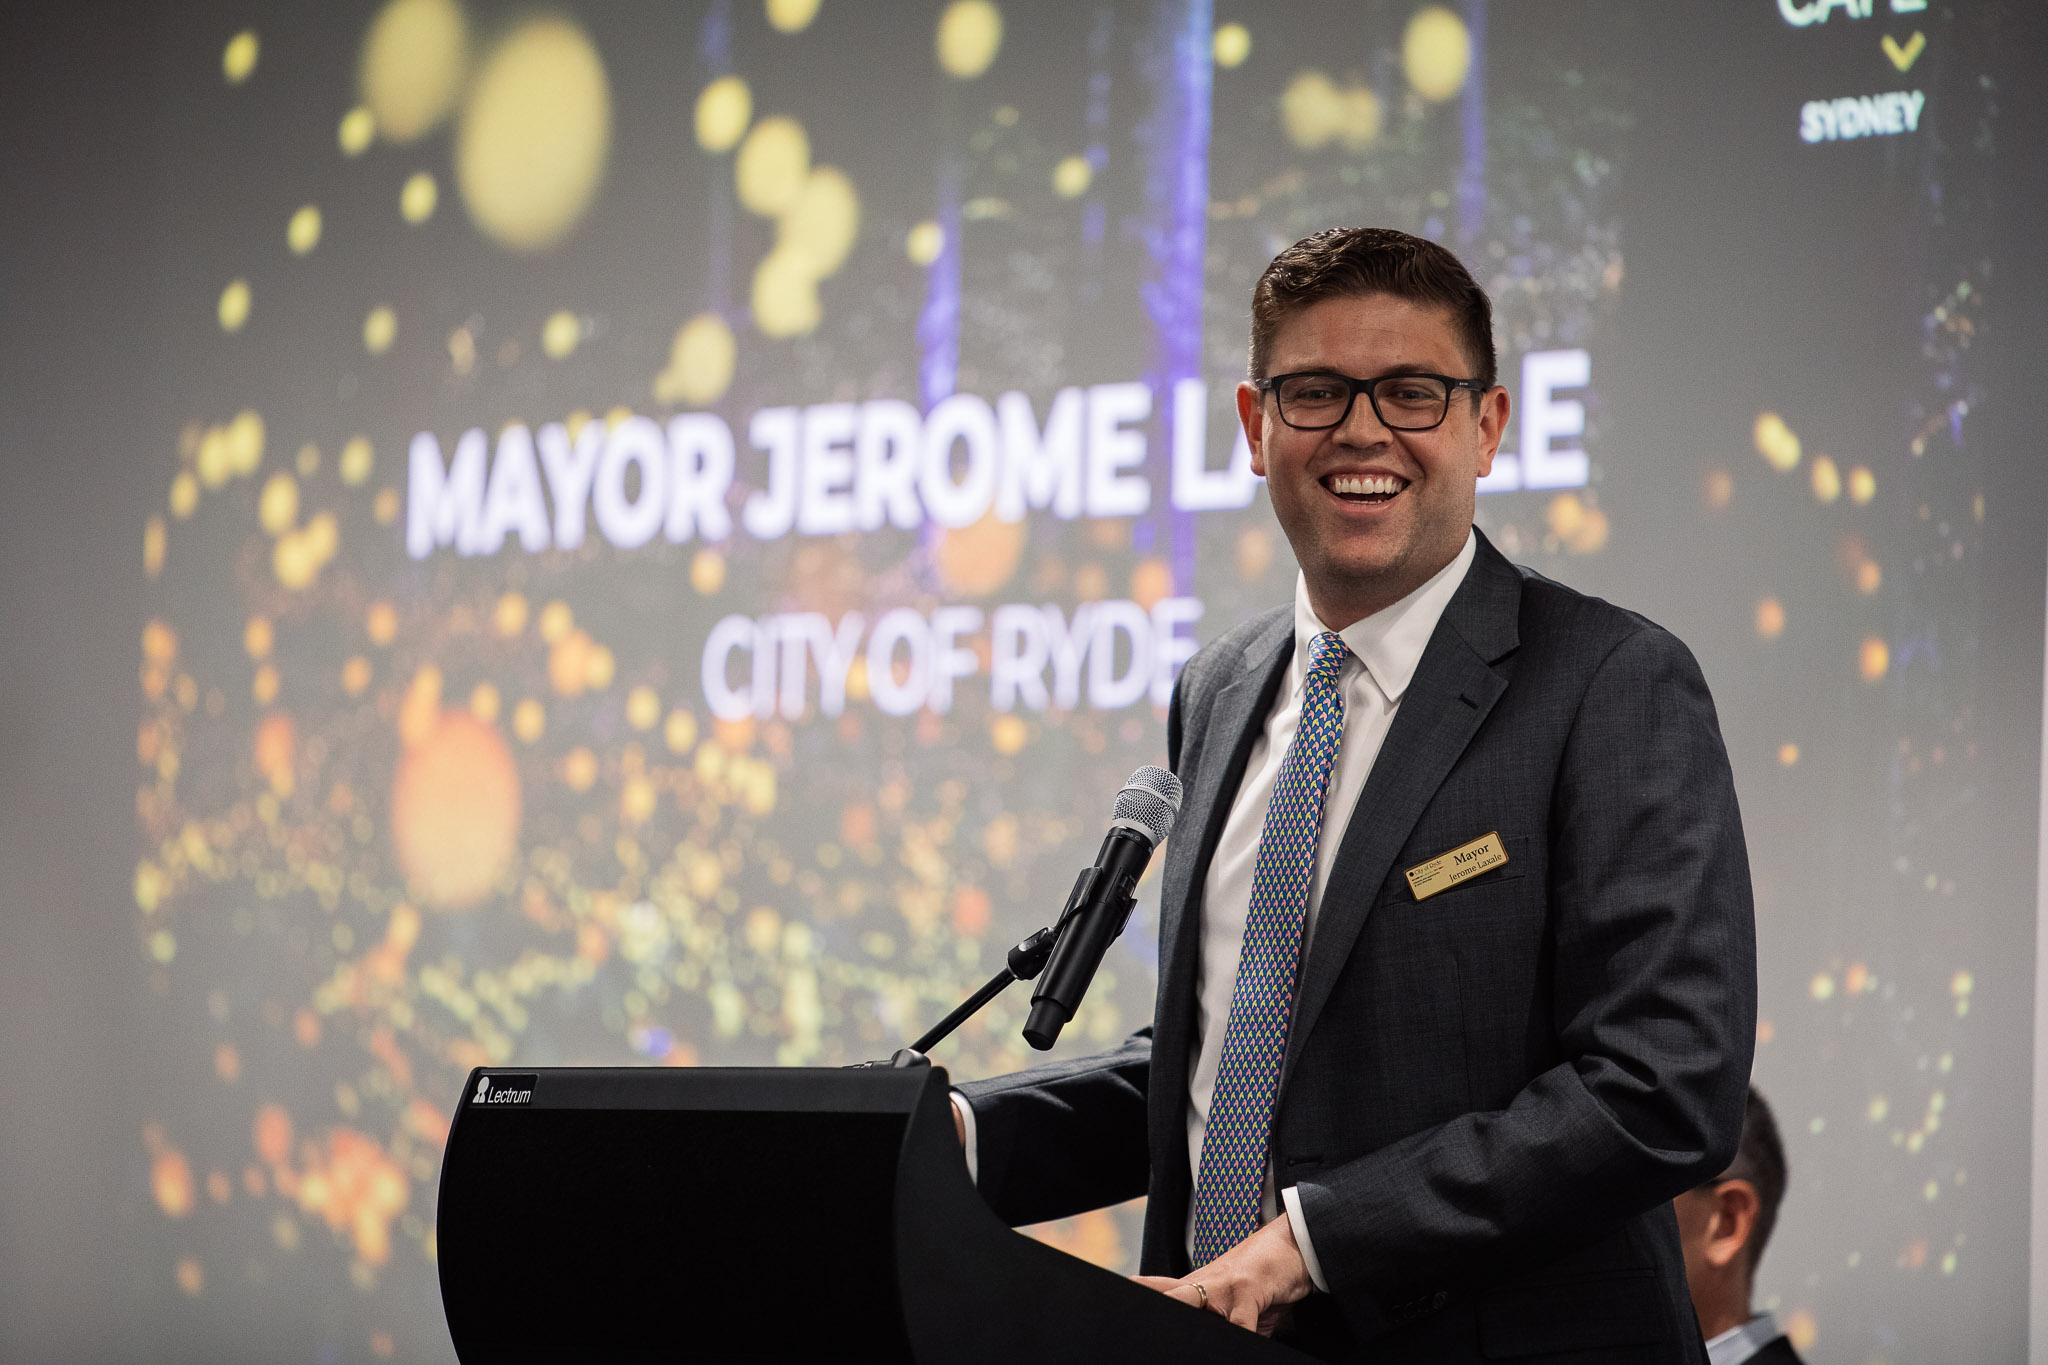 Mayor Jerome Laxale